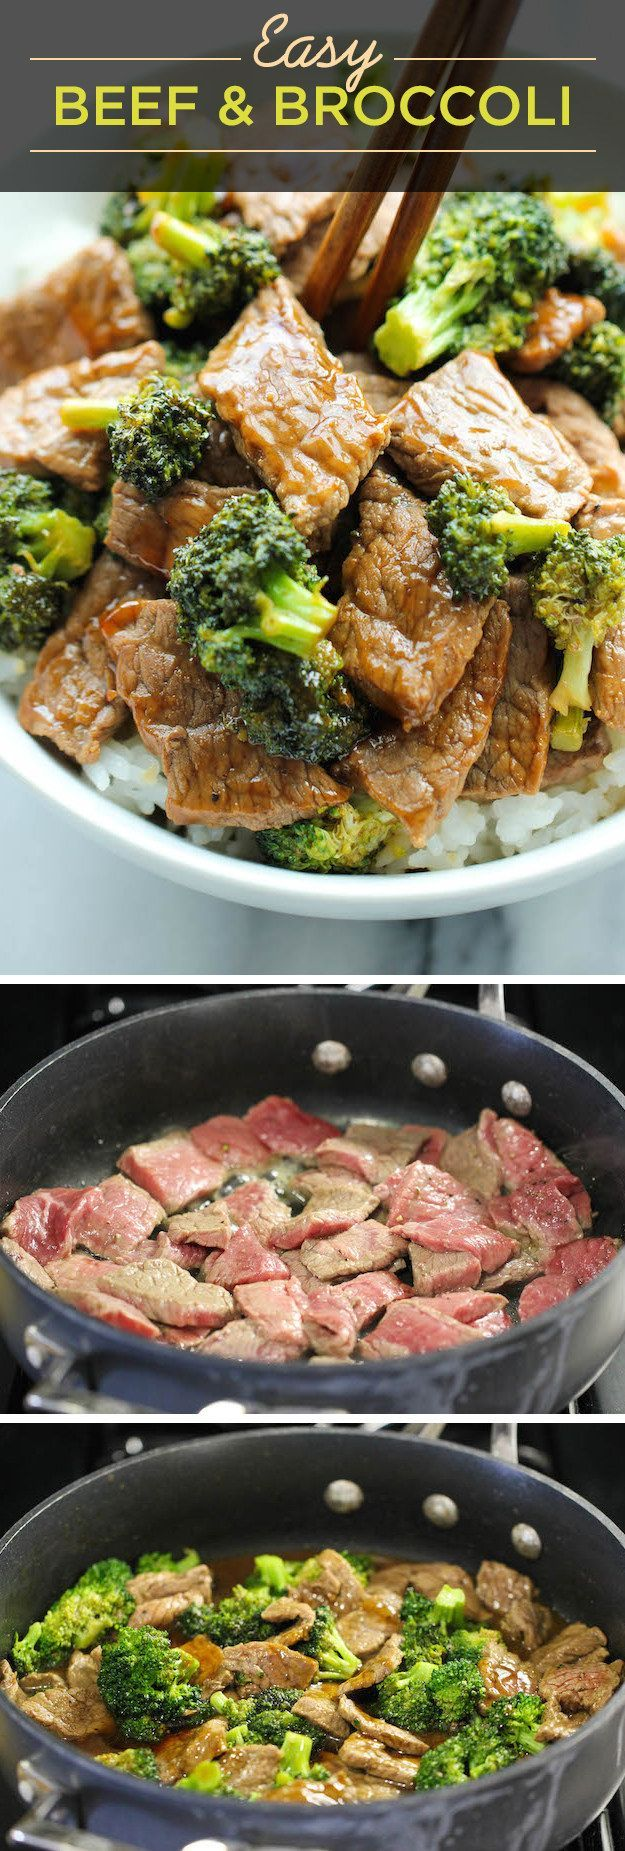 Easy Beef and Broccoli Recipe - From Damn Delicious :: /damndelicious/ ::   Glamour Shots Photography